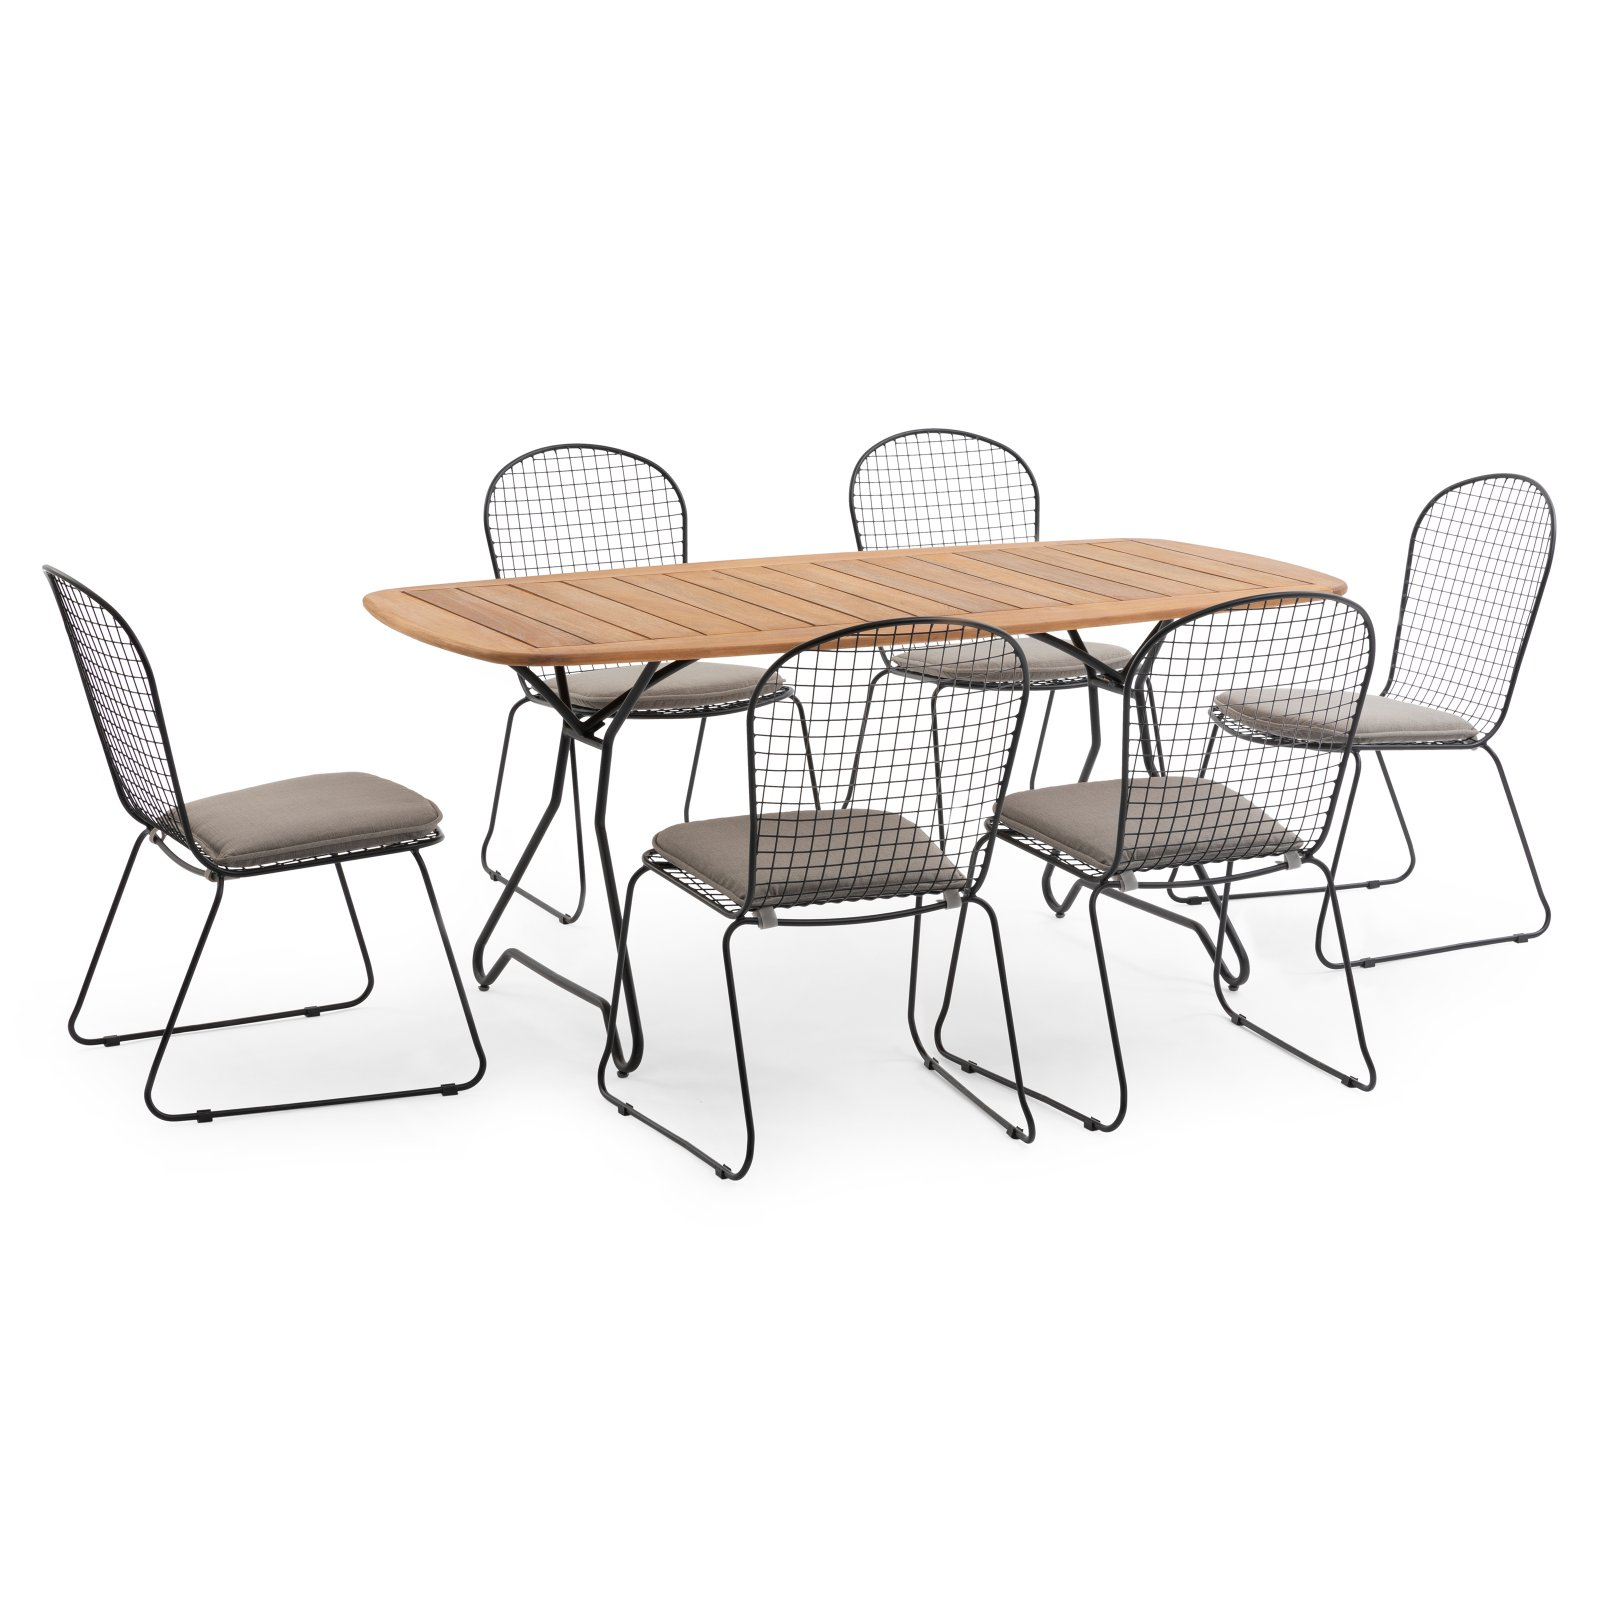 Belham Living Ashlin 7 Piece Wood and Wire Outdoor Patio Dining Set